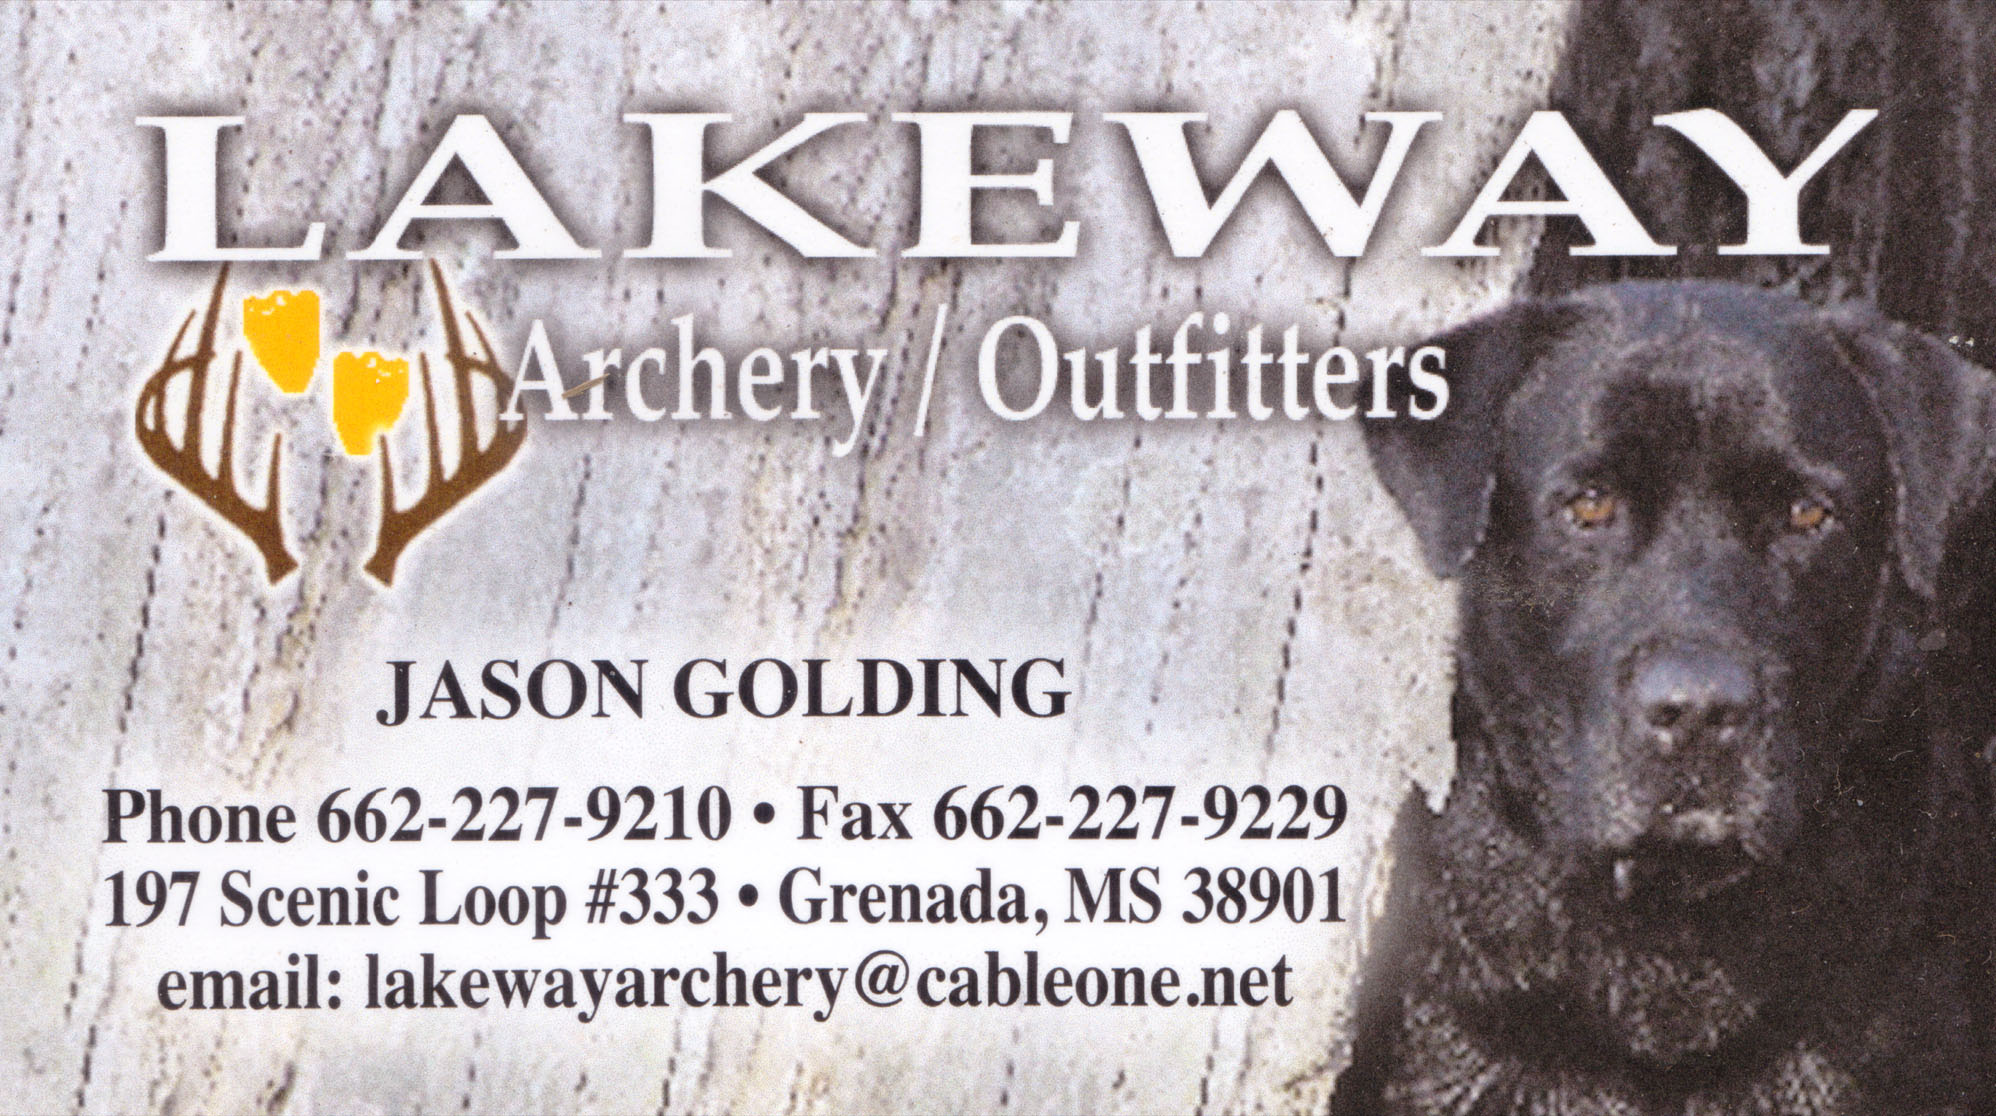 Outdoor Gear/Sporting Goods